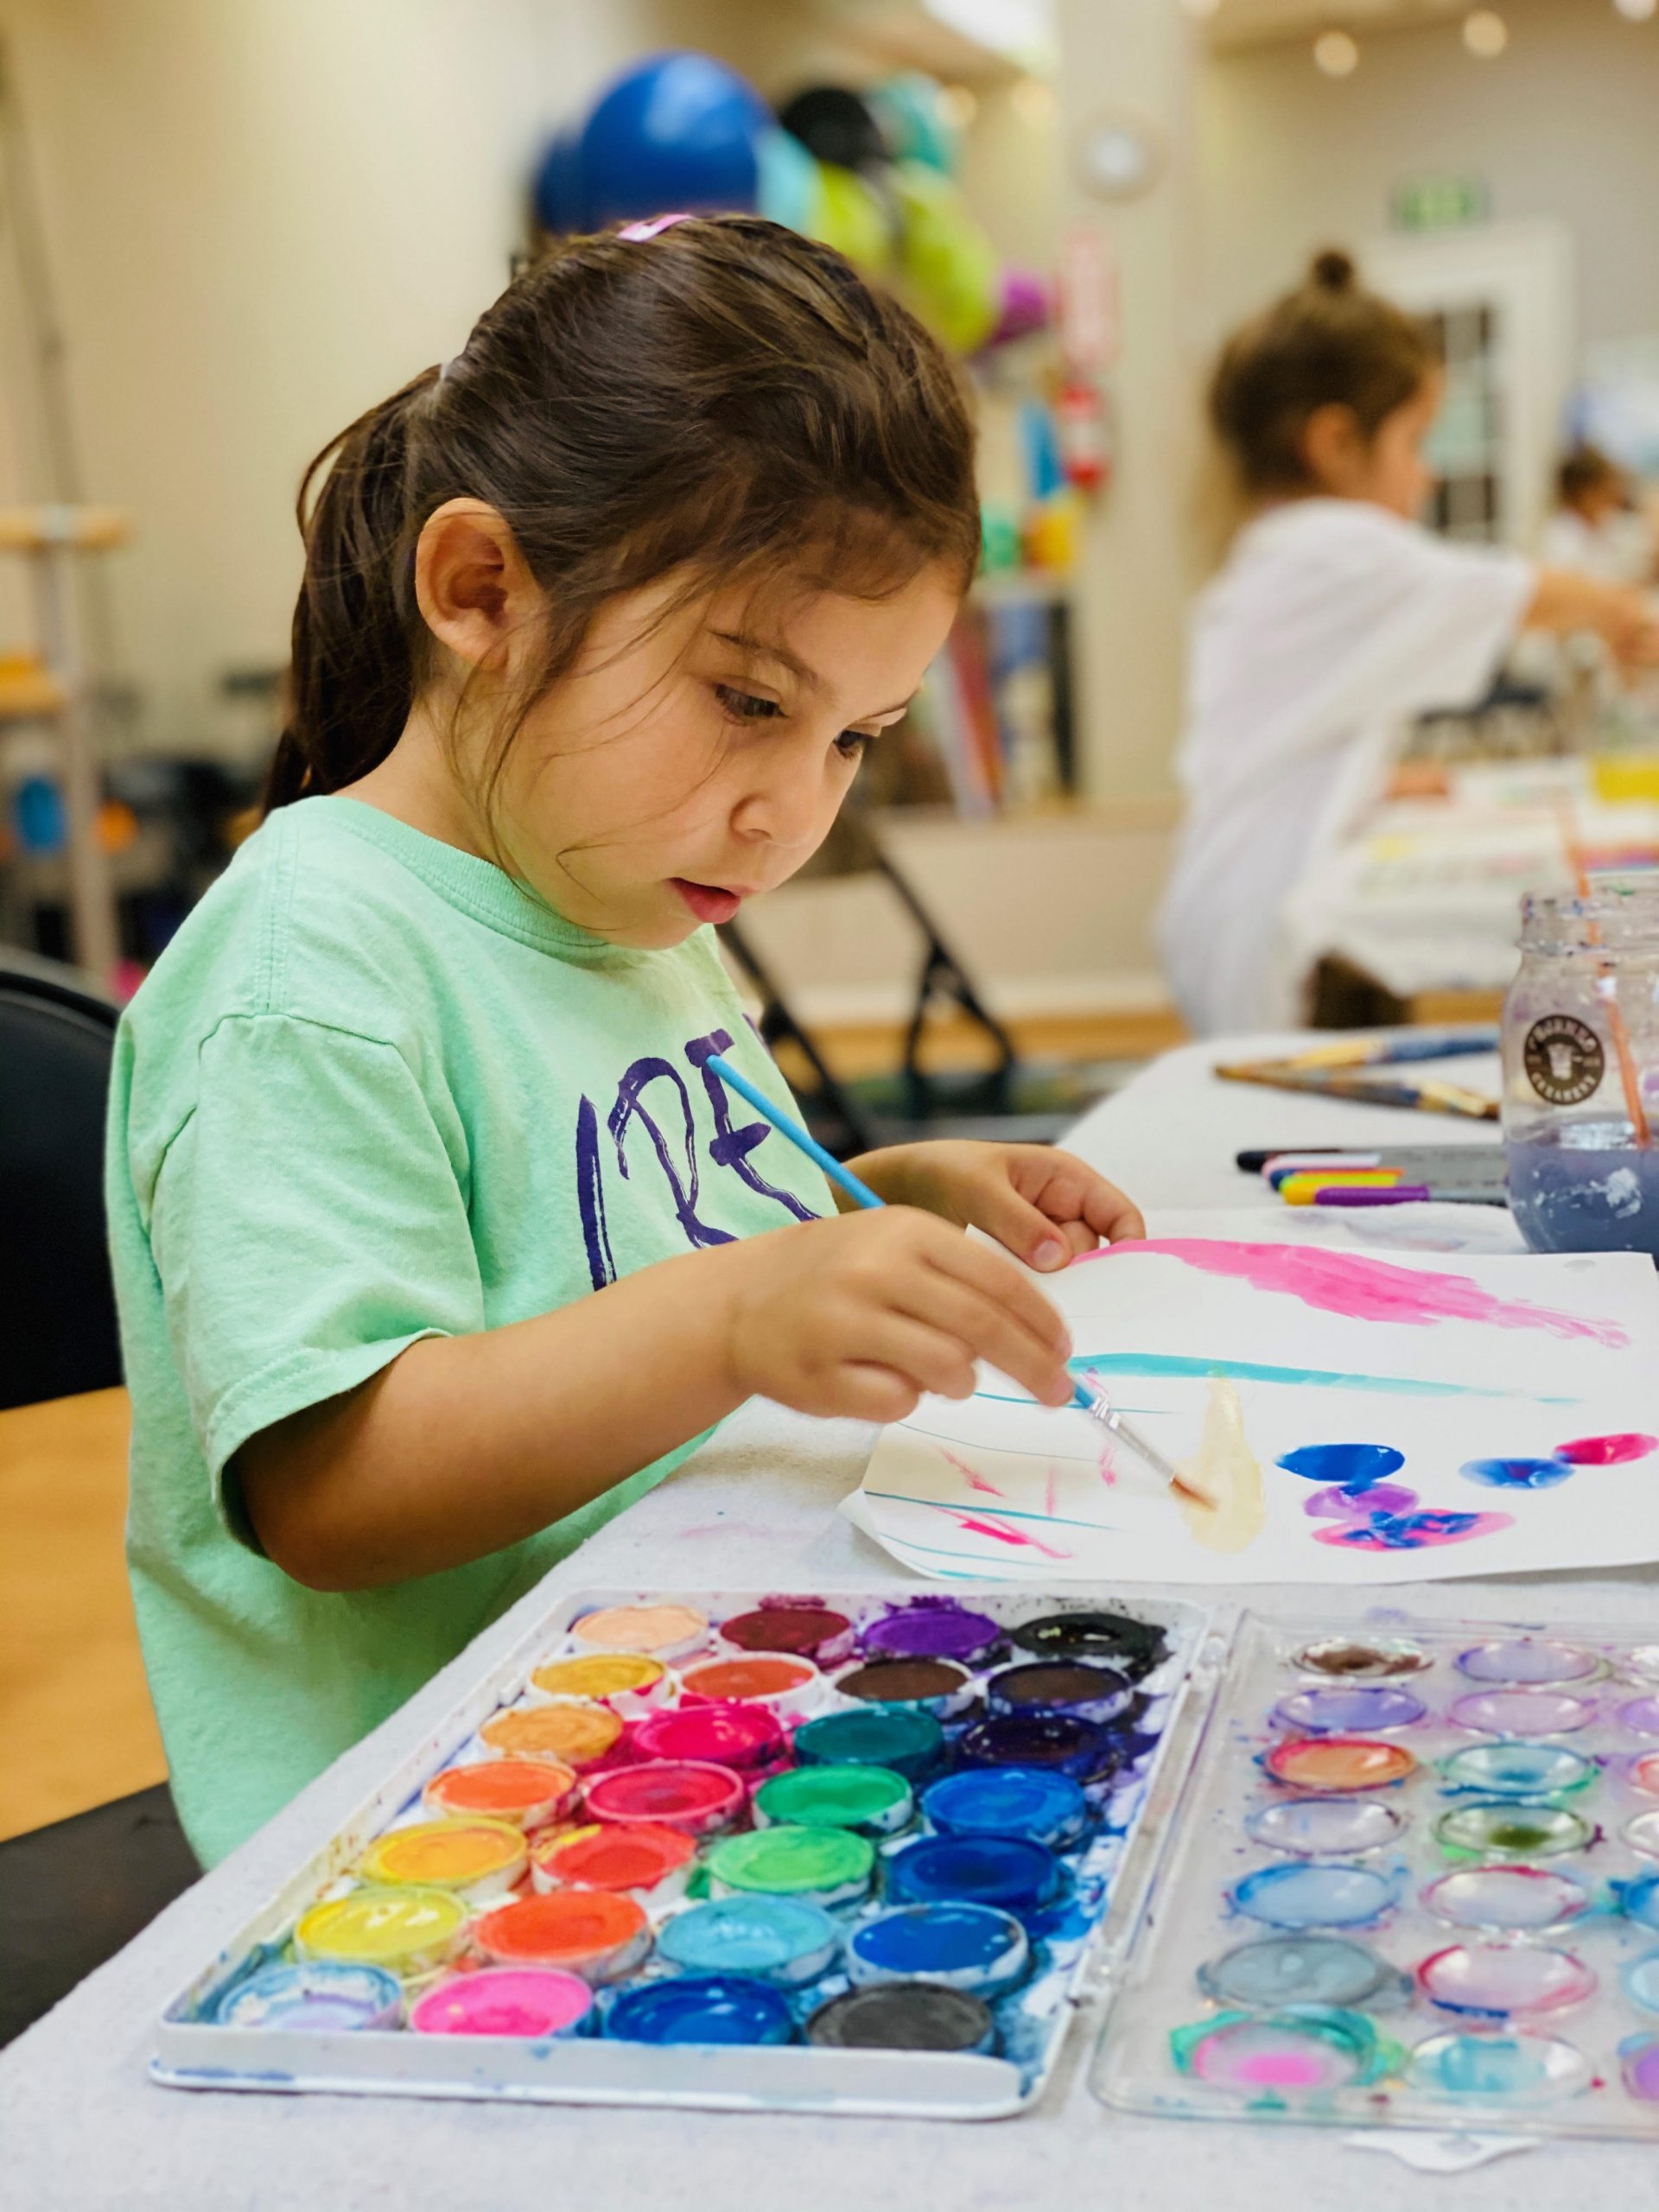 Mini-CREATE Jazz Dance & Painting Camp (Ages 4-5)